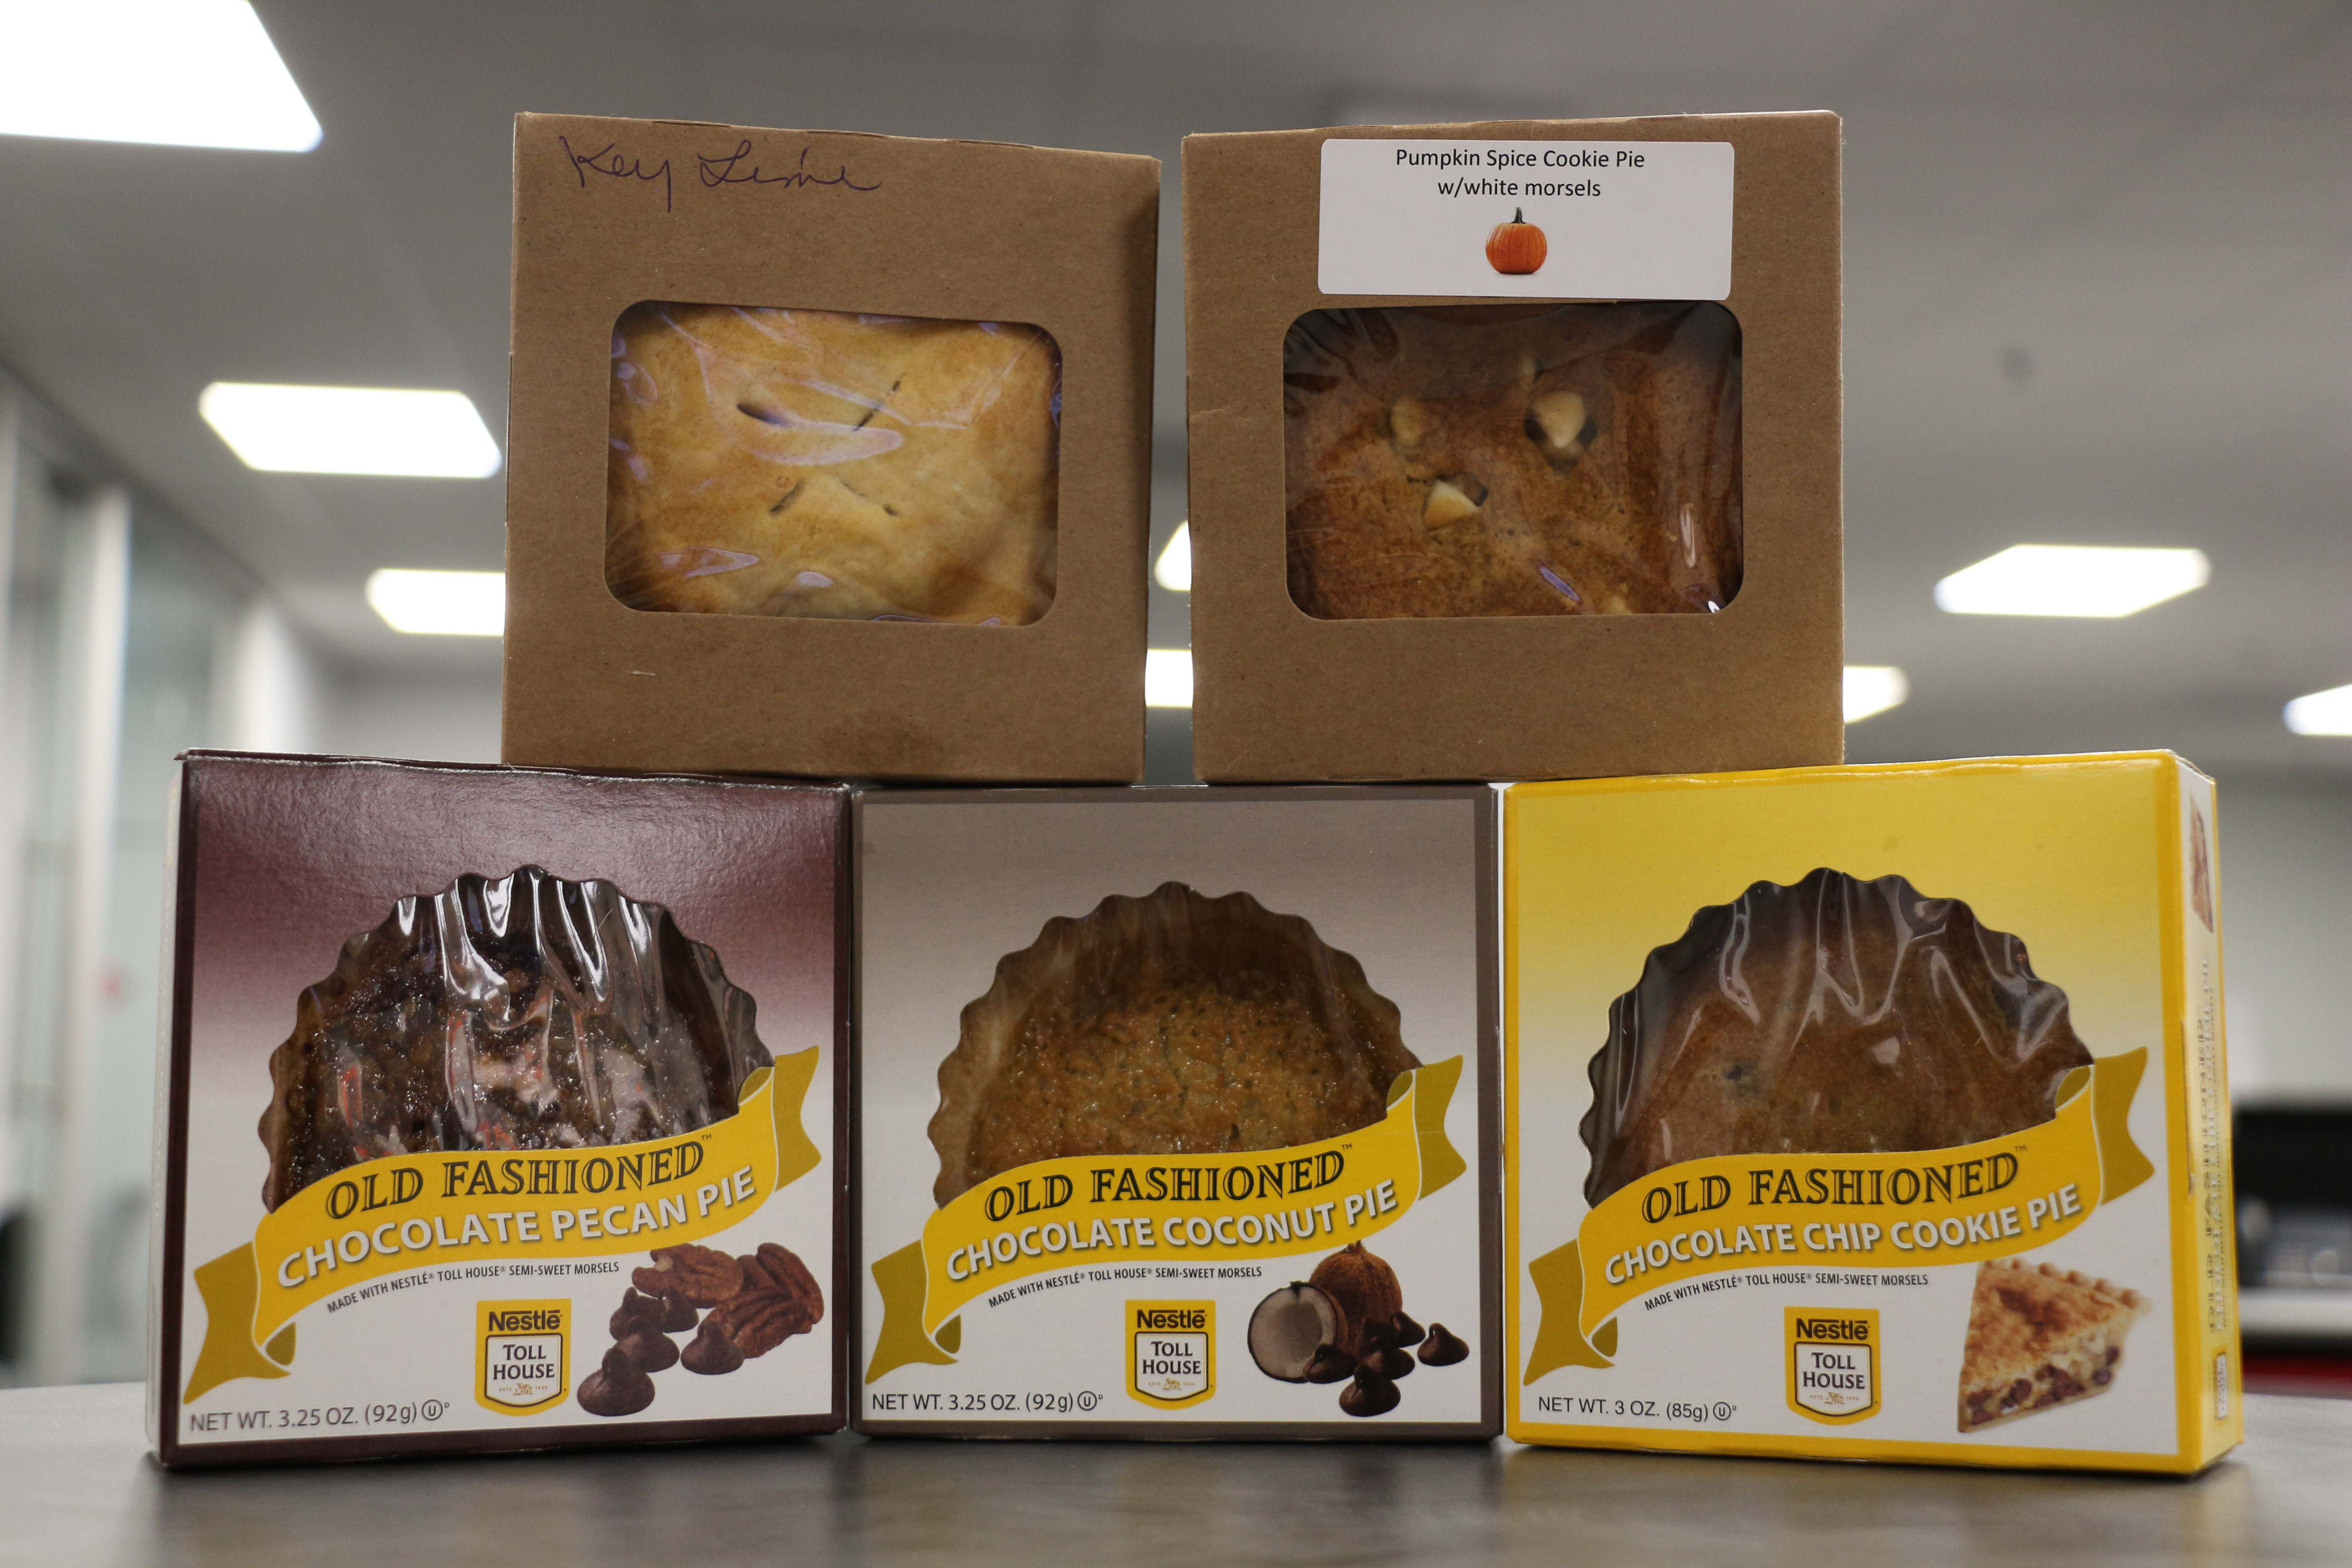 I went inside the Table Talk Pies R&D department to try their pie prototypes: Here's what they're working on